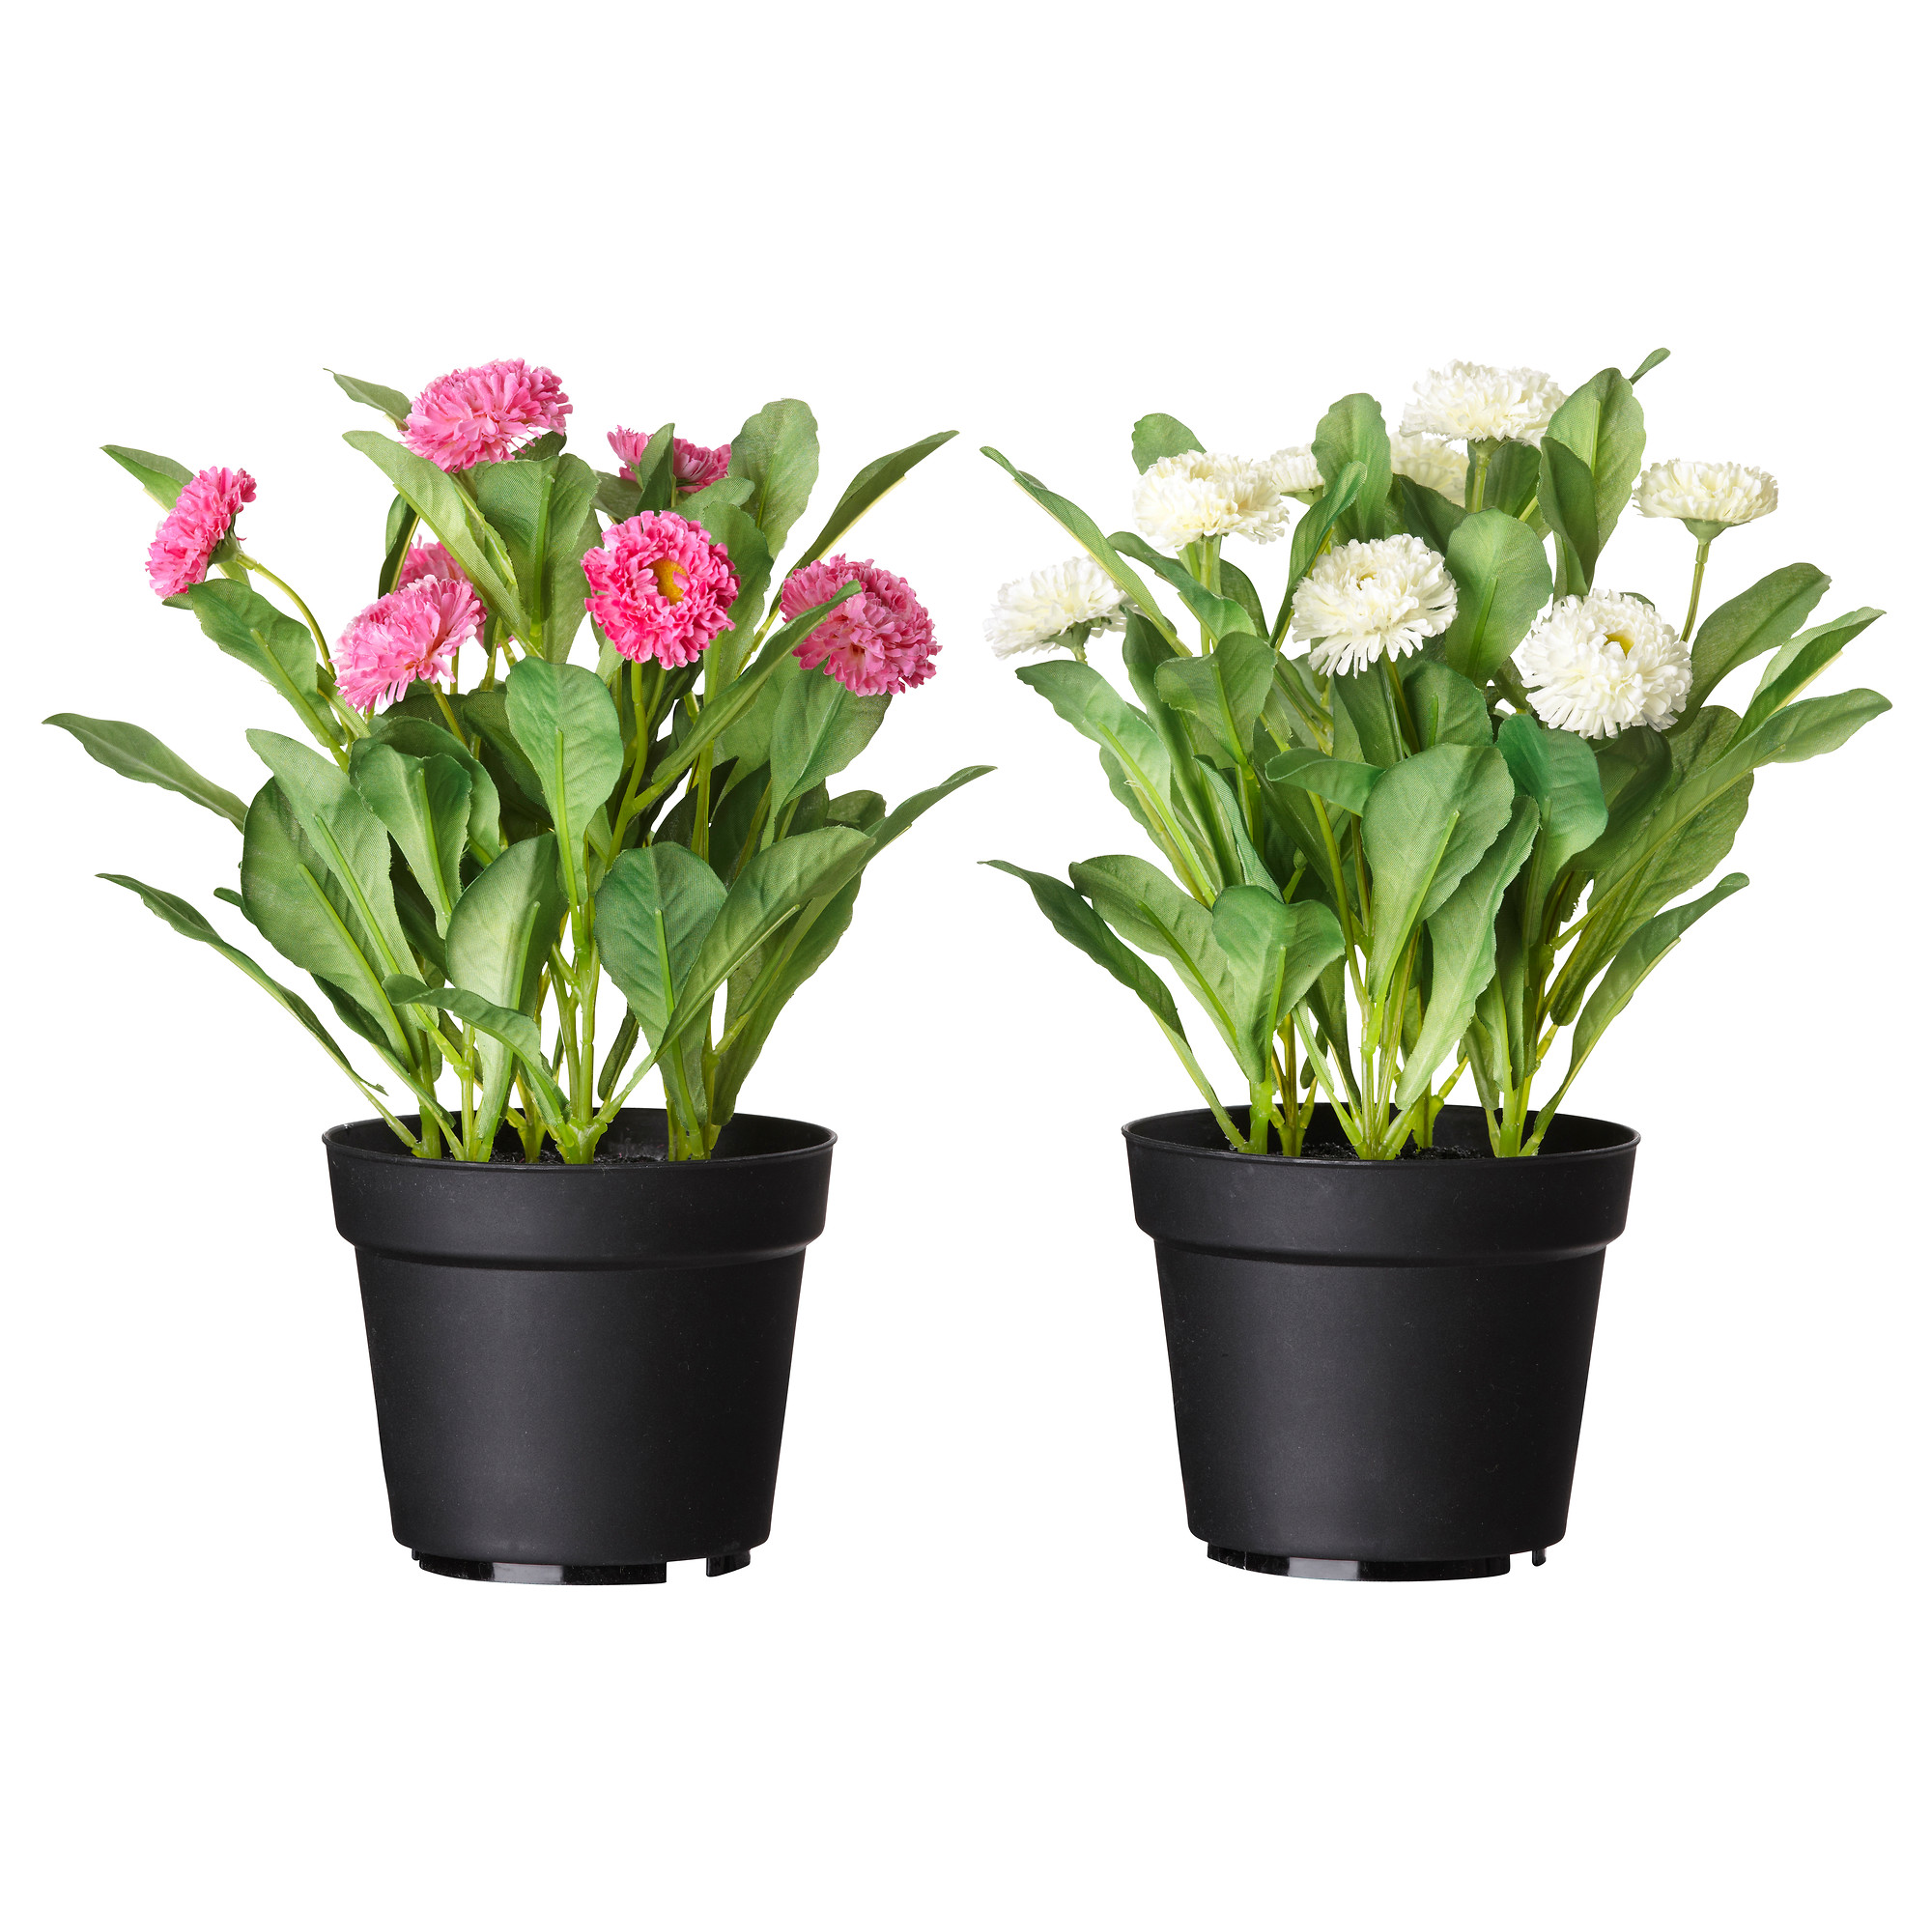 fejka artificial potted plant common daisy assorted colors diameter of plant pot 4 artificial plants for office decor